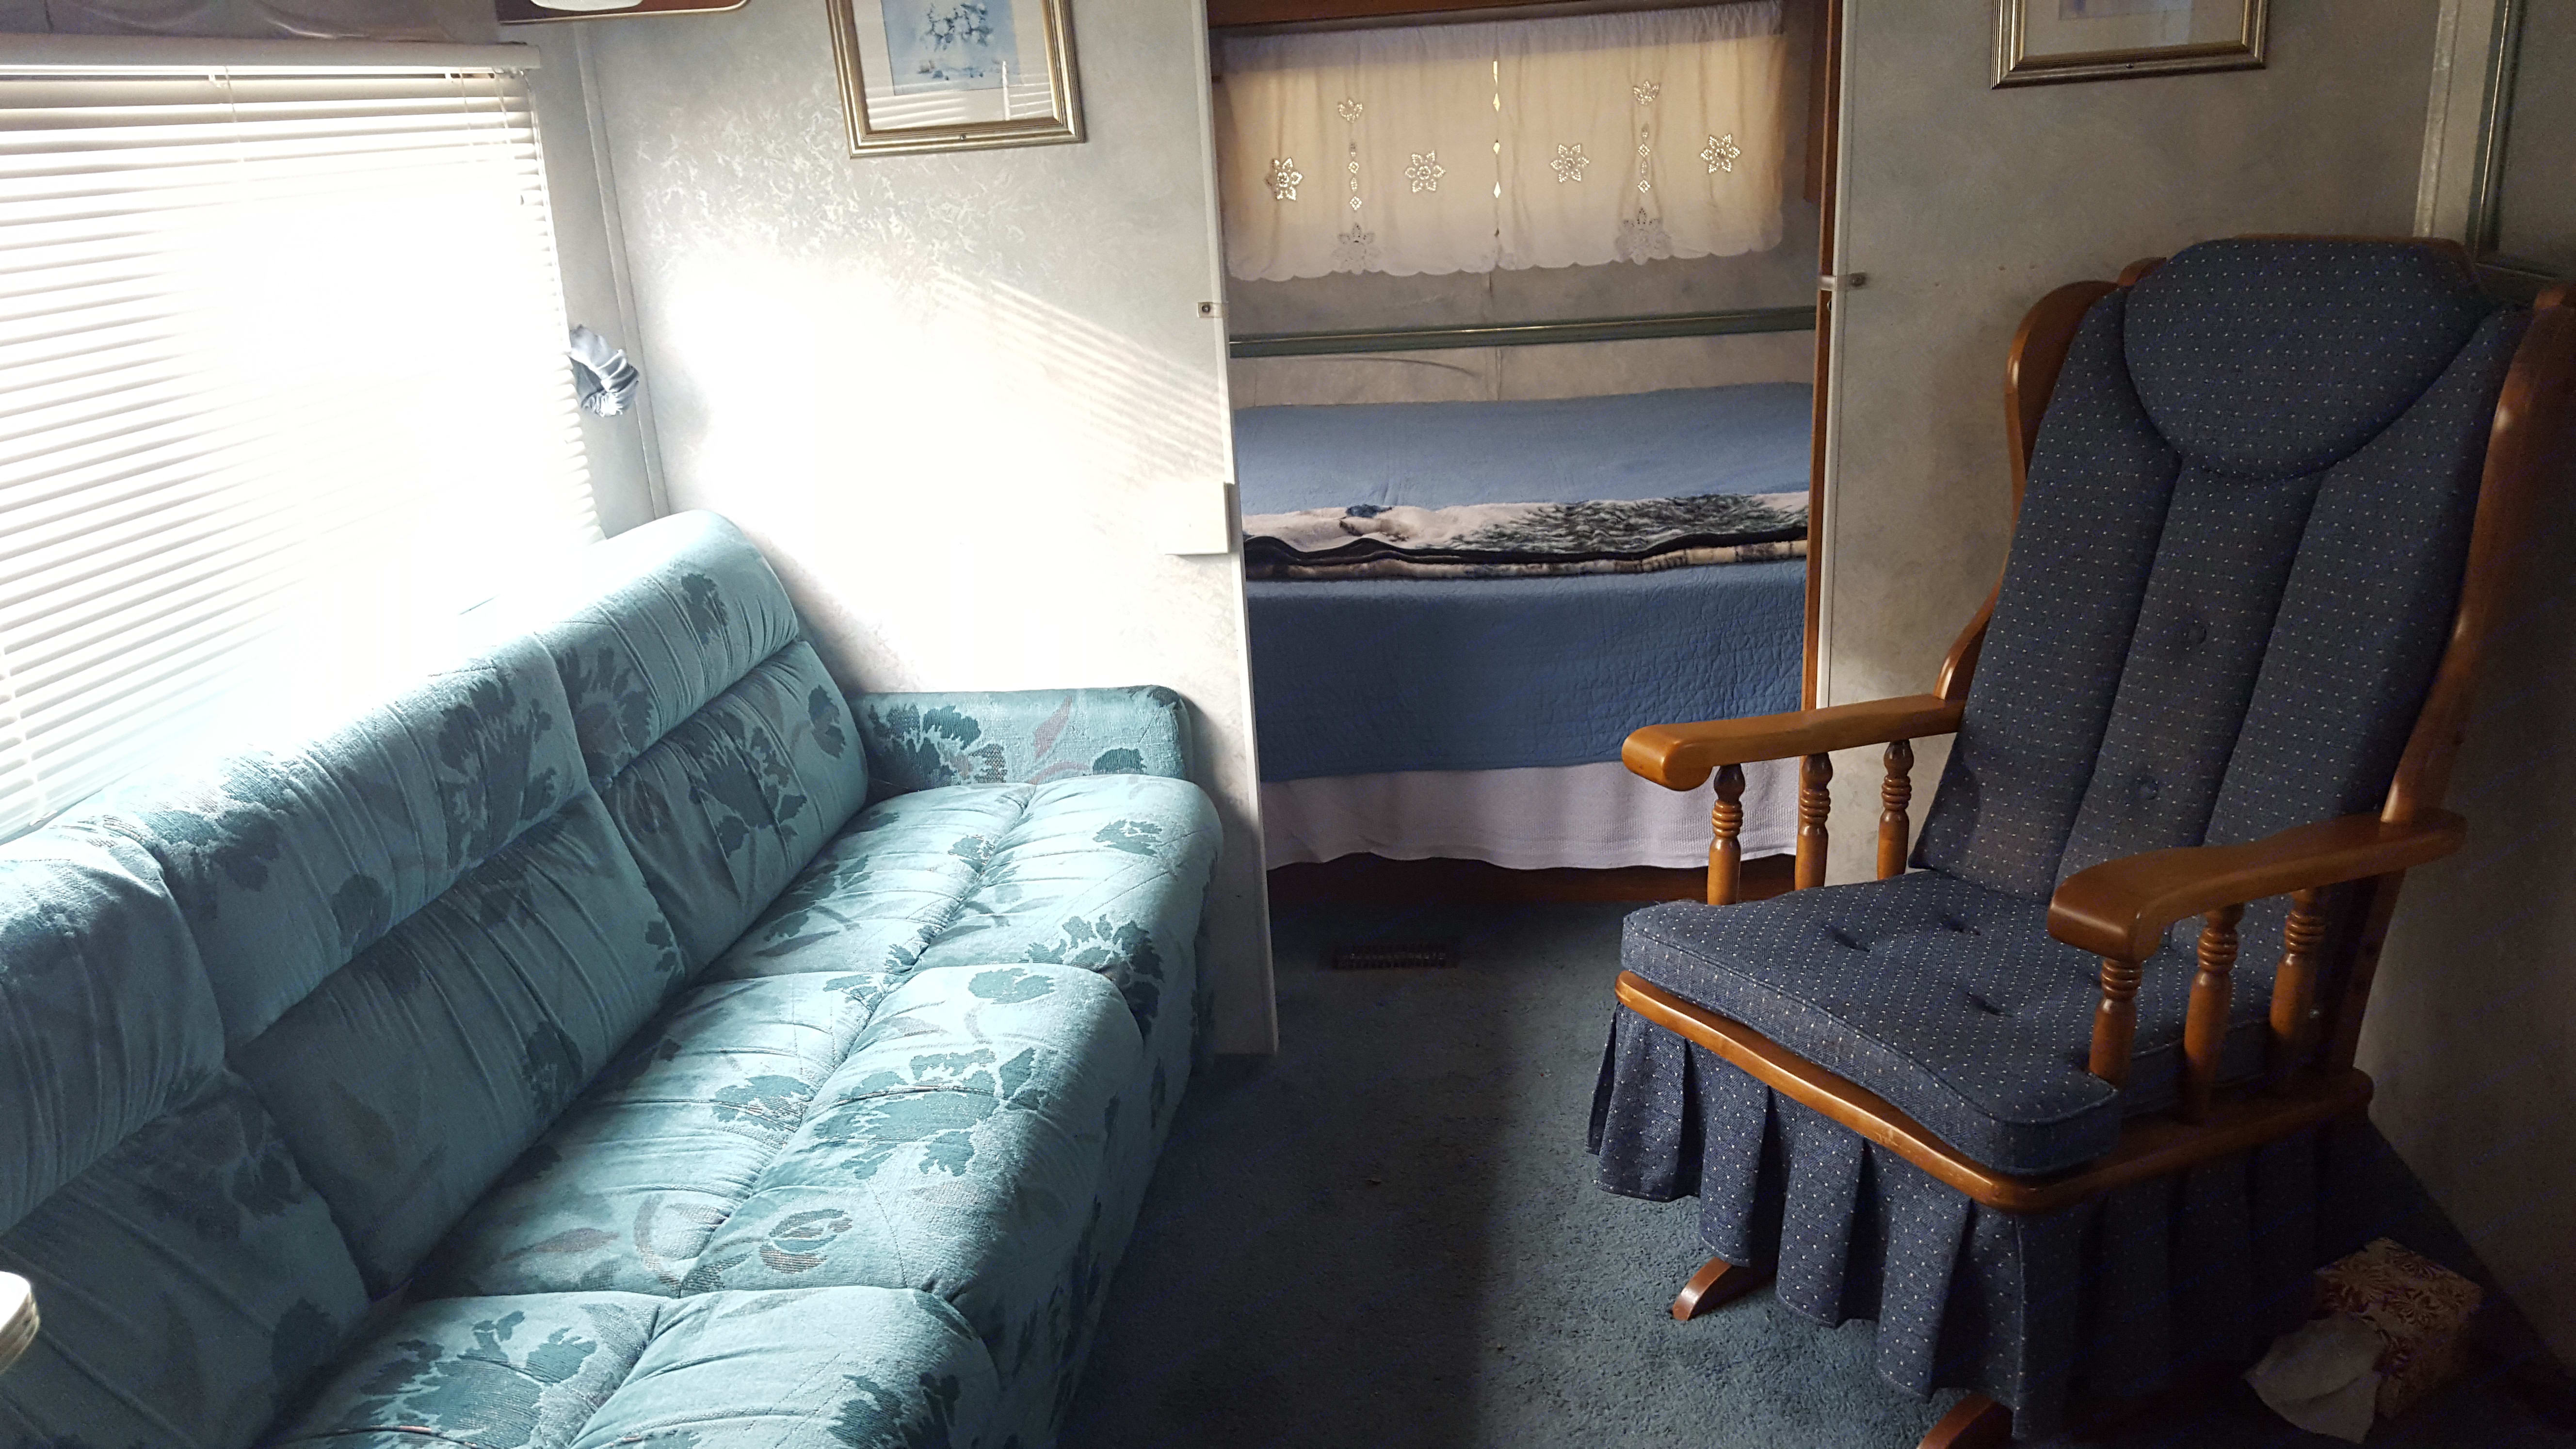 Couch, rocking chair, bedroom with sliding doors.. Coachmen Catalina 1994